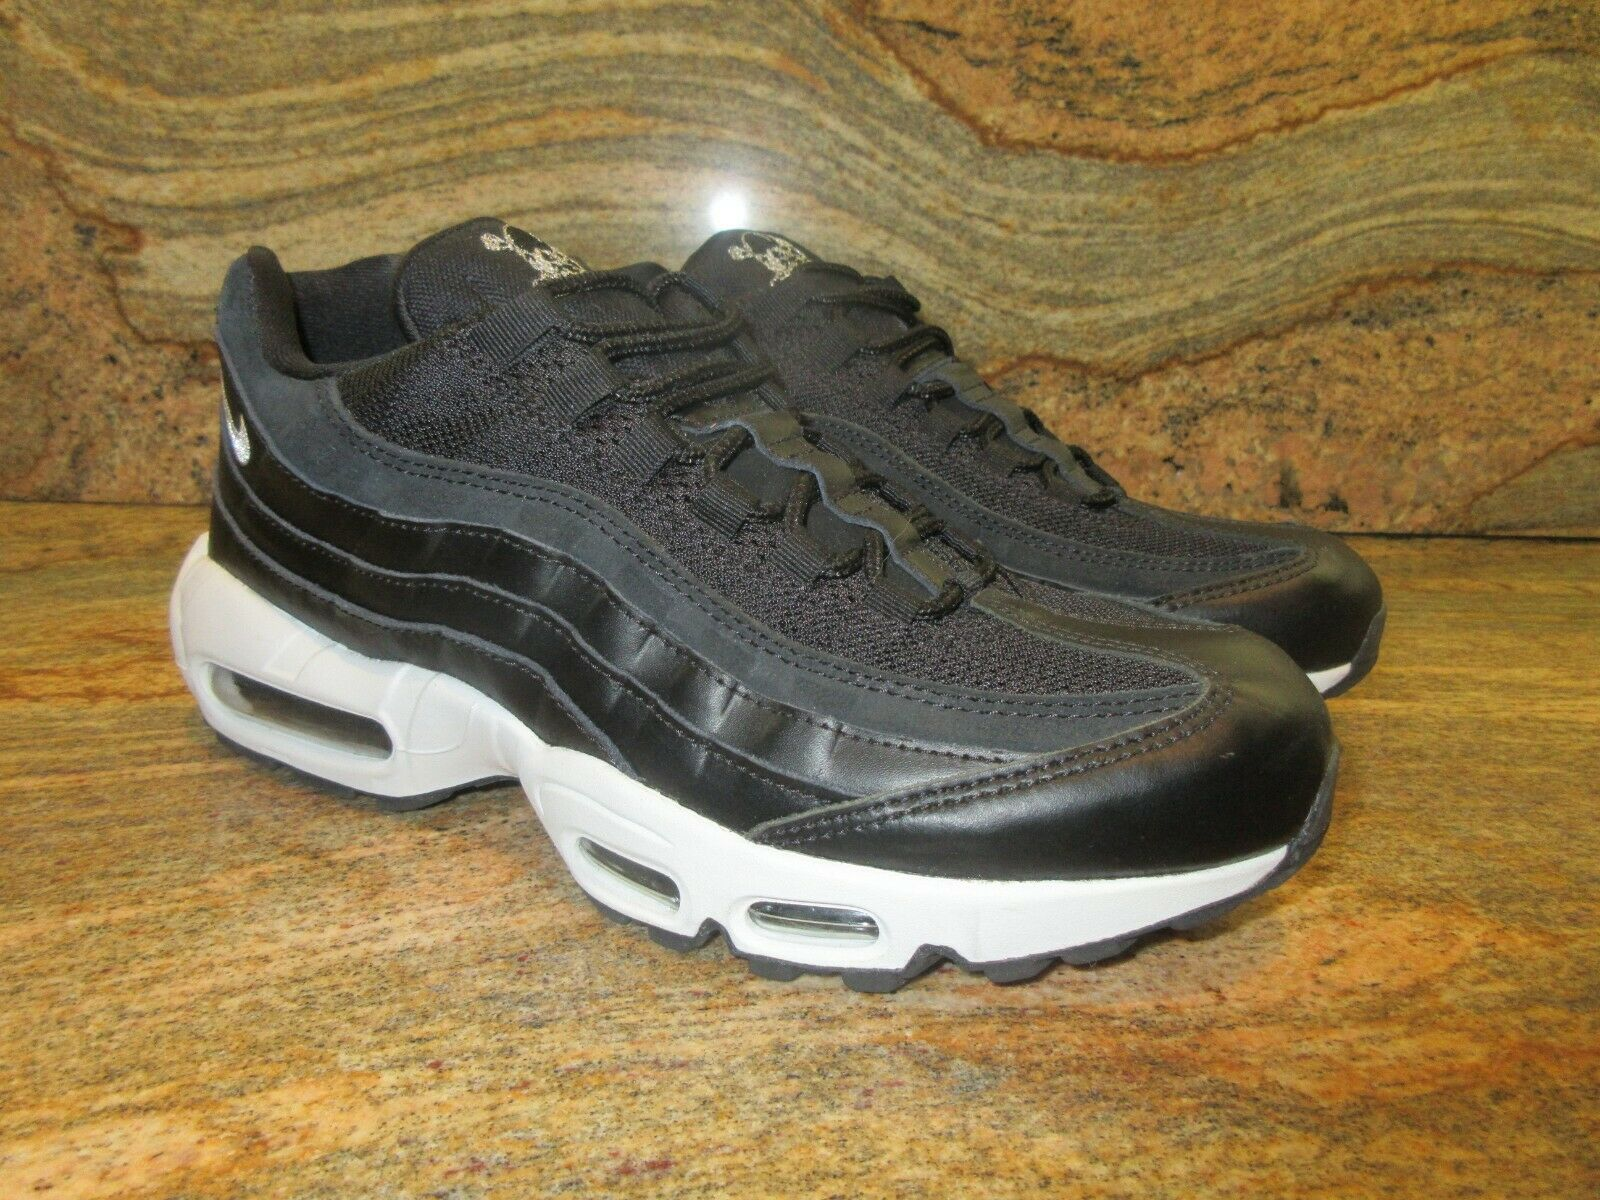 2017 Nike Air Max 95 Premium QS SZ 9 Rebel Skulls Pack Black White 538416-008